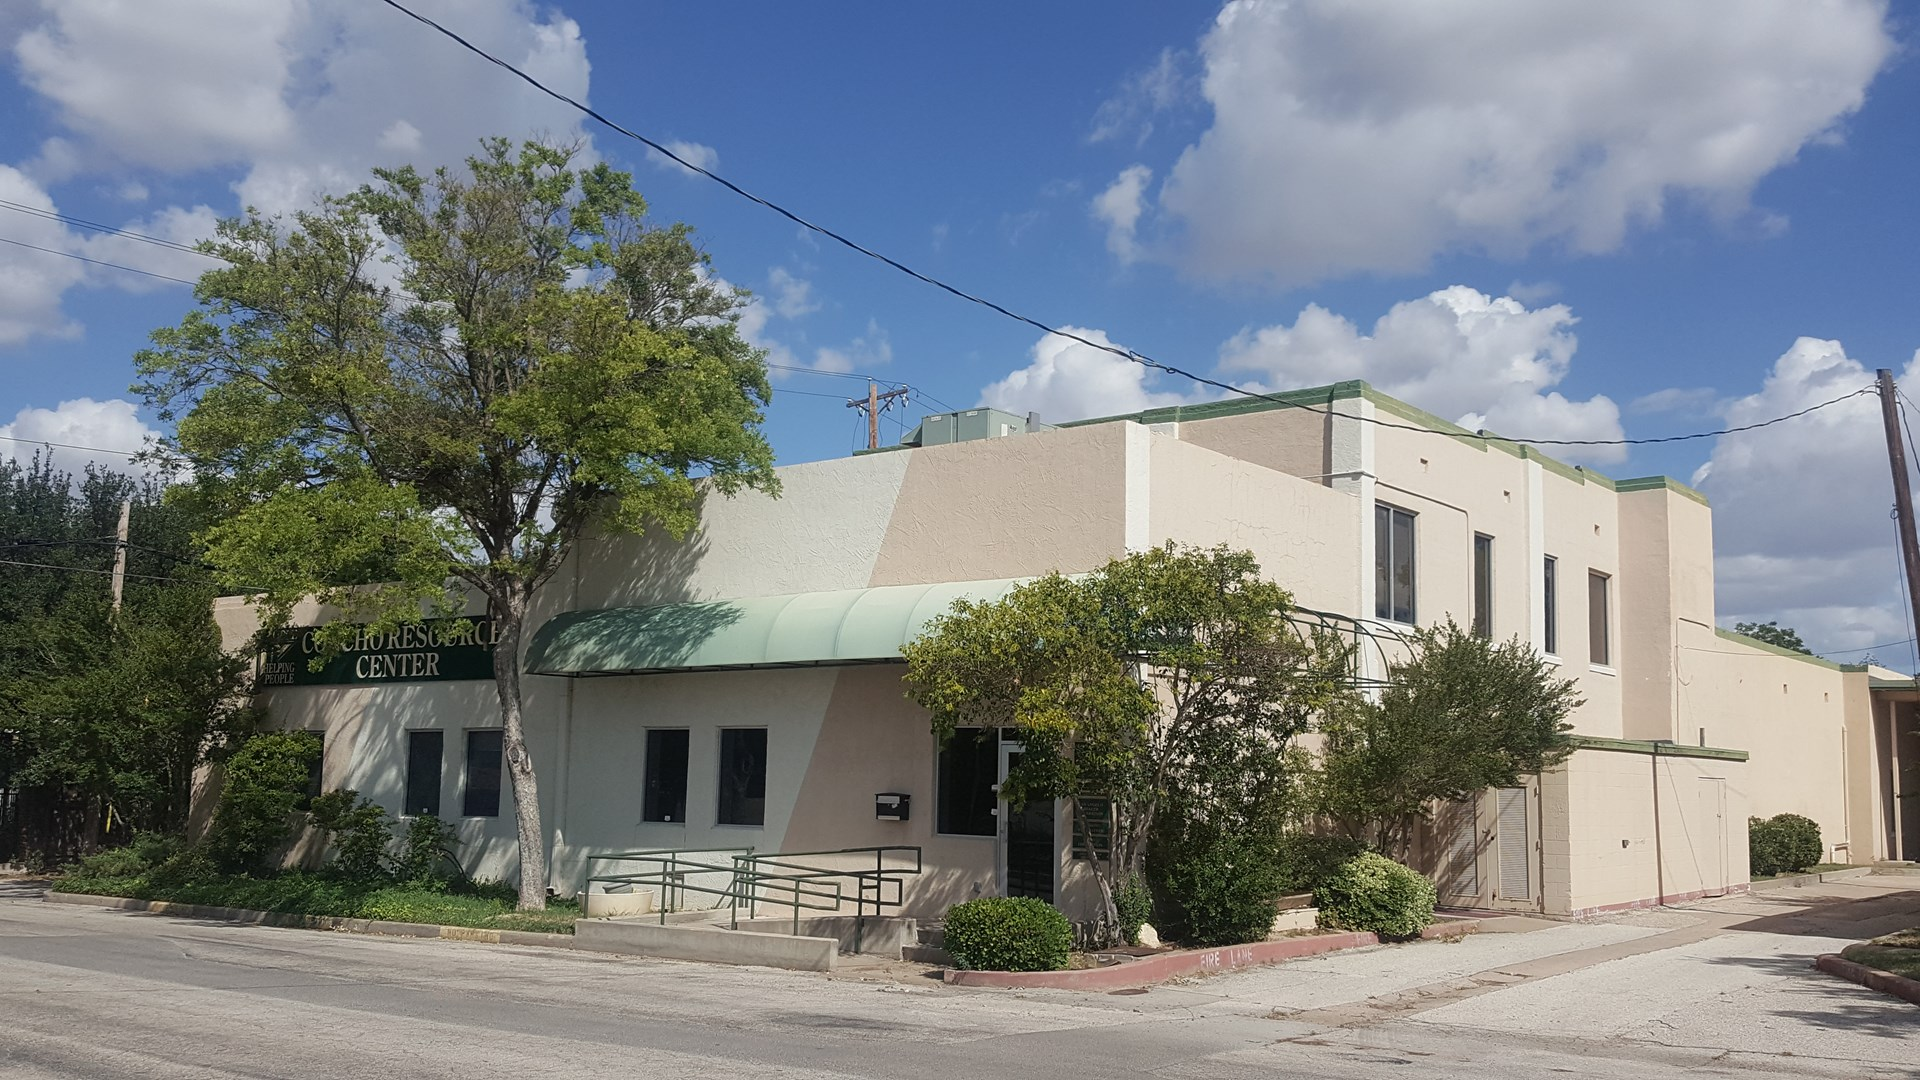 Commercial Building in San Angelo